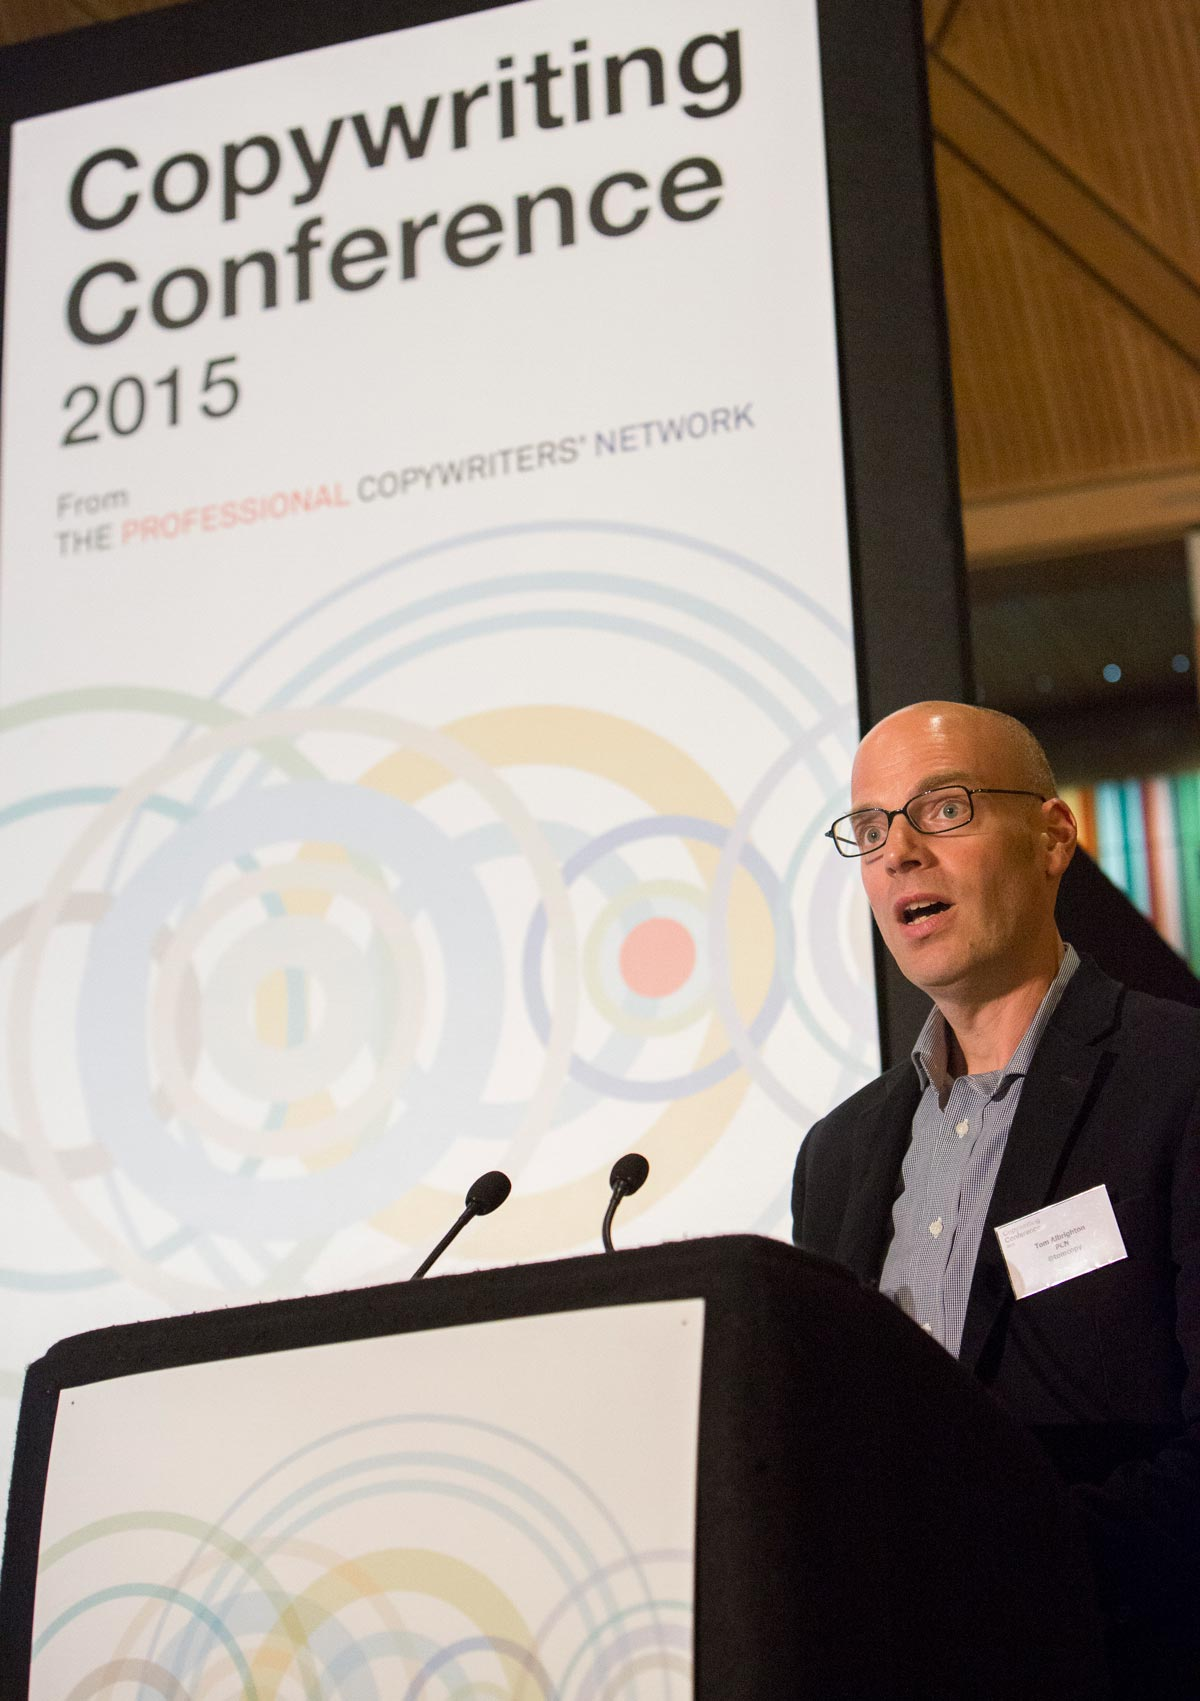 Tom speaking at conference